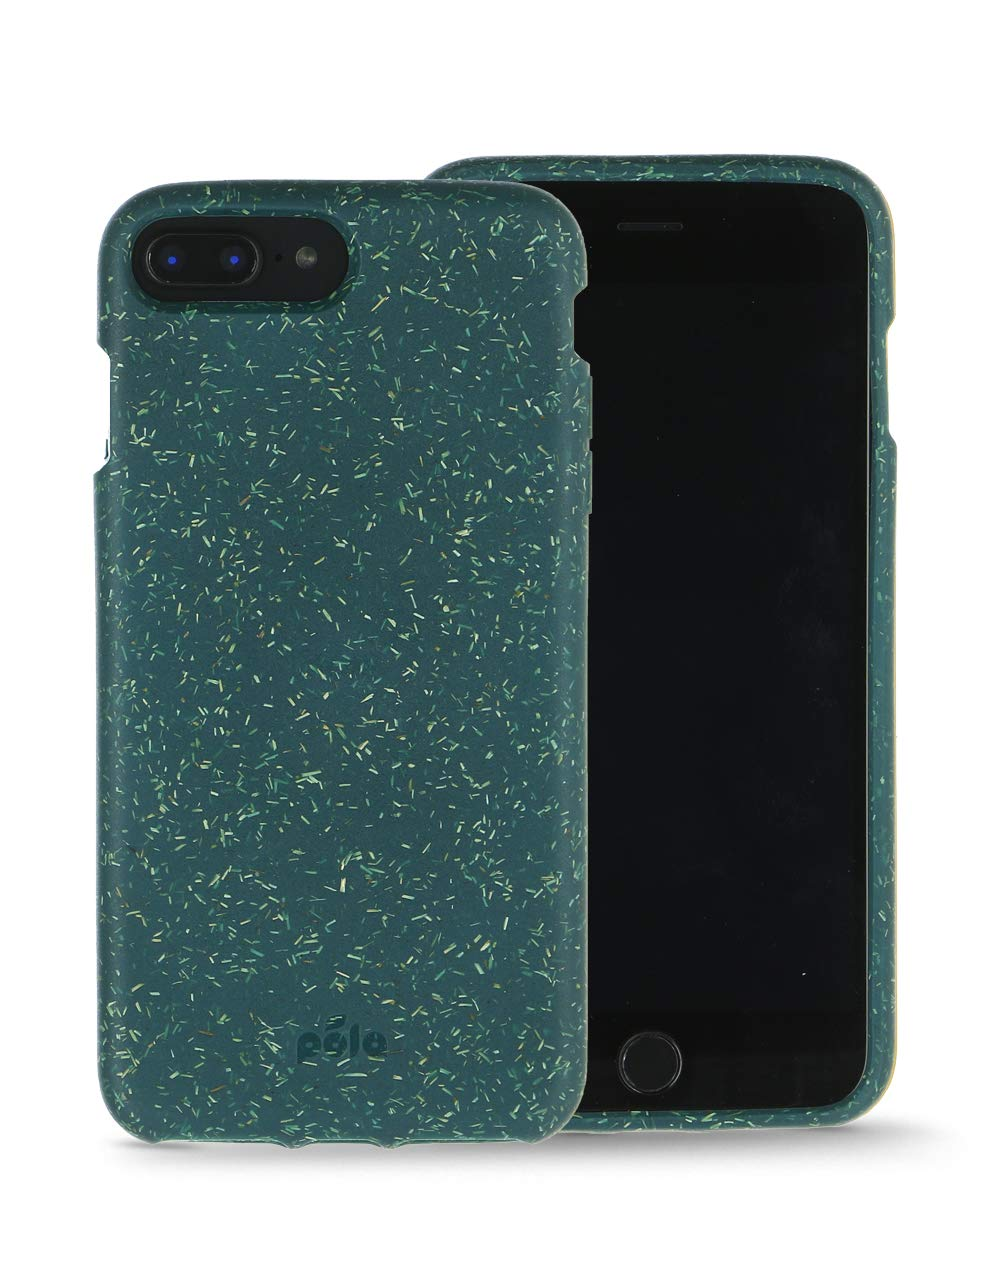 Pela: Phone Case for iPhone 6/6s/7/8/SE - 100% Compostable and Biodegradable - Eco-Friendly - Made from Plants (6/6s/7/8/SE Green)